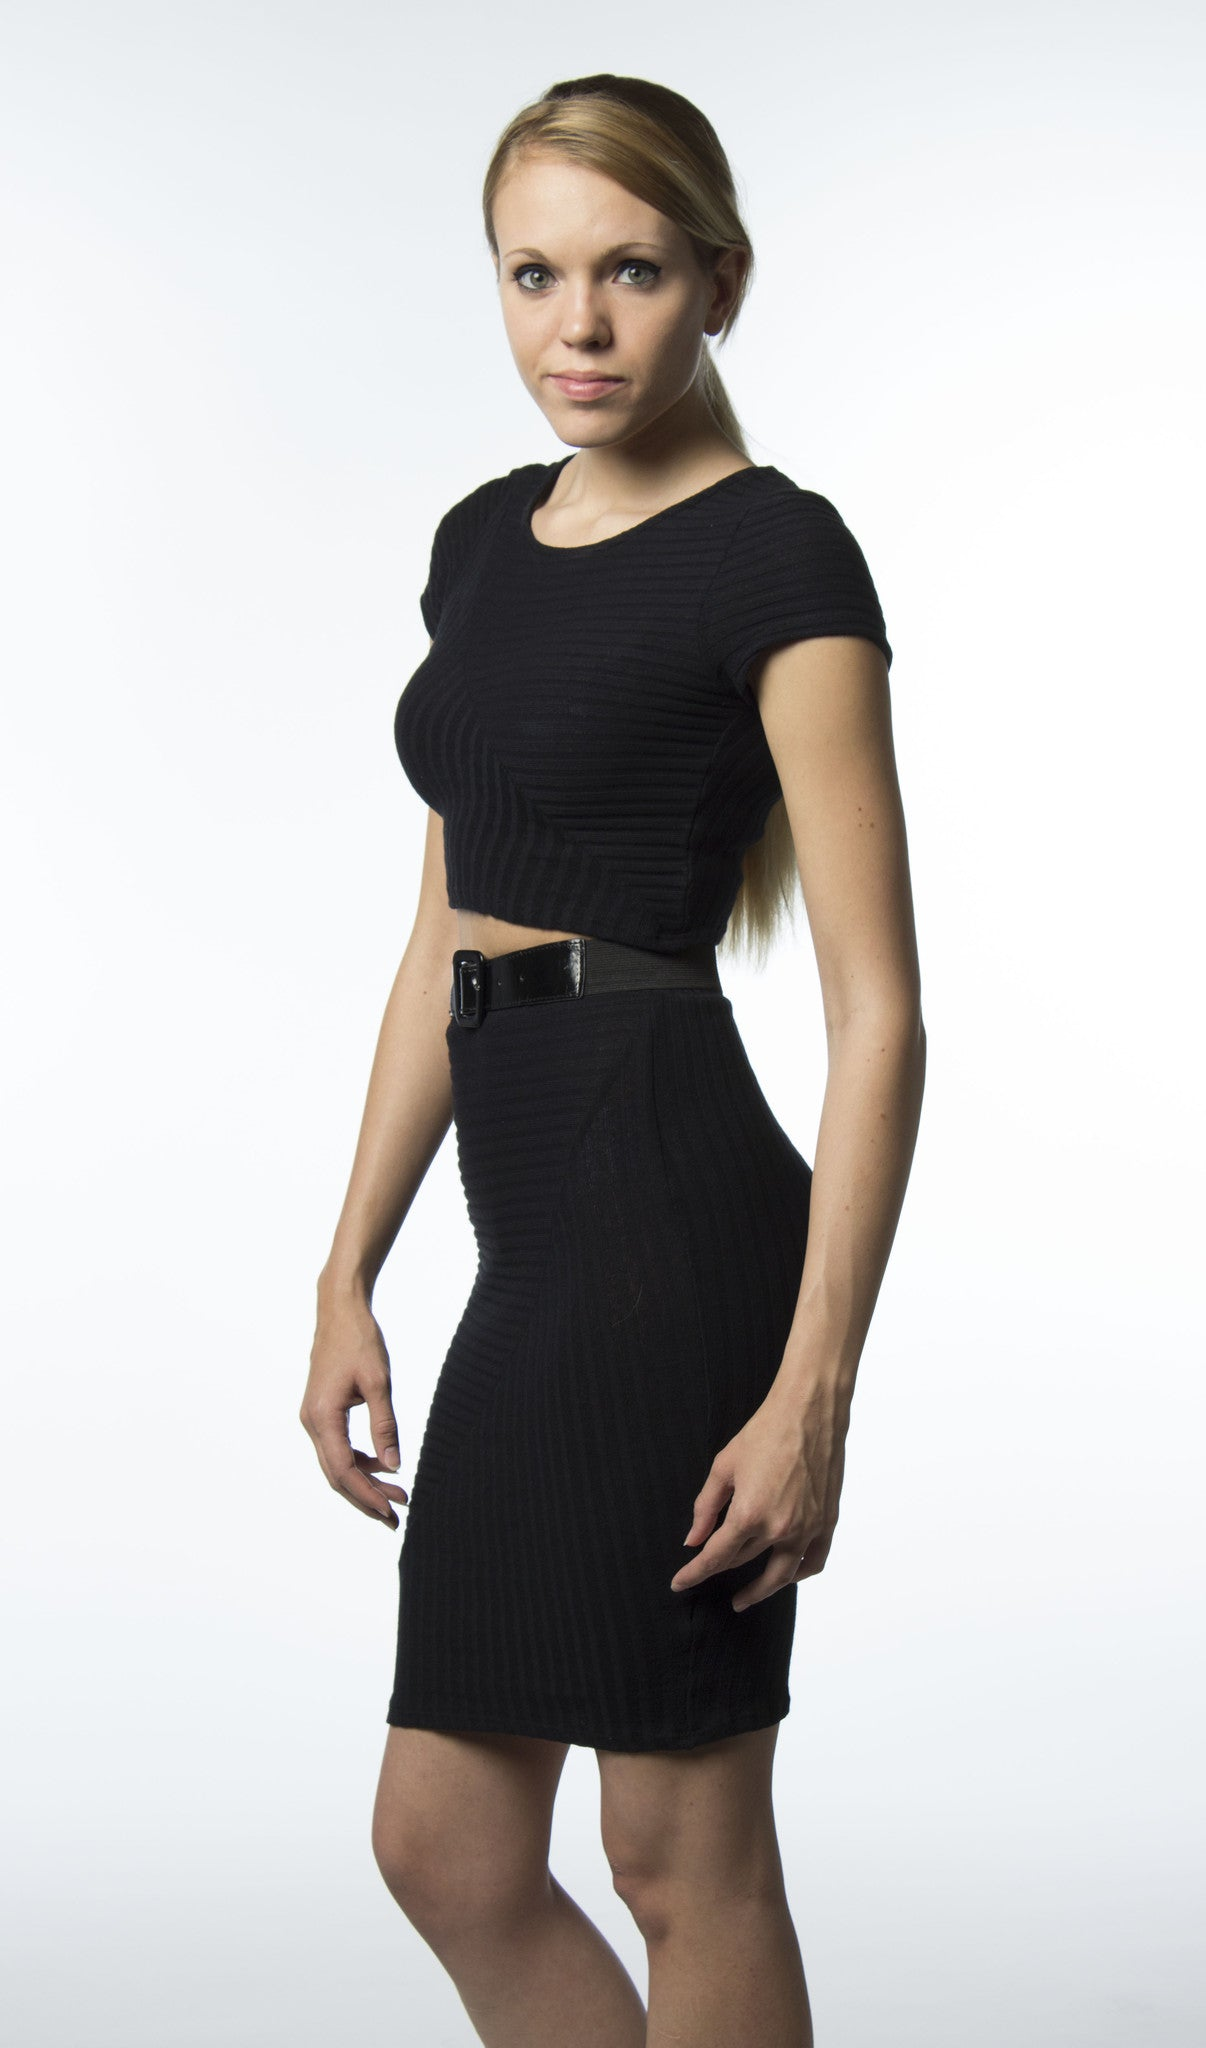 black ribbed skirt with crop top